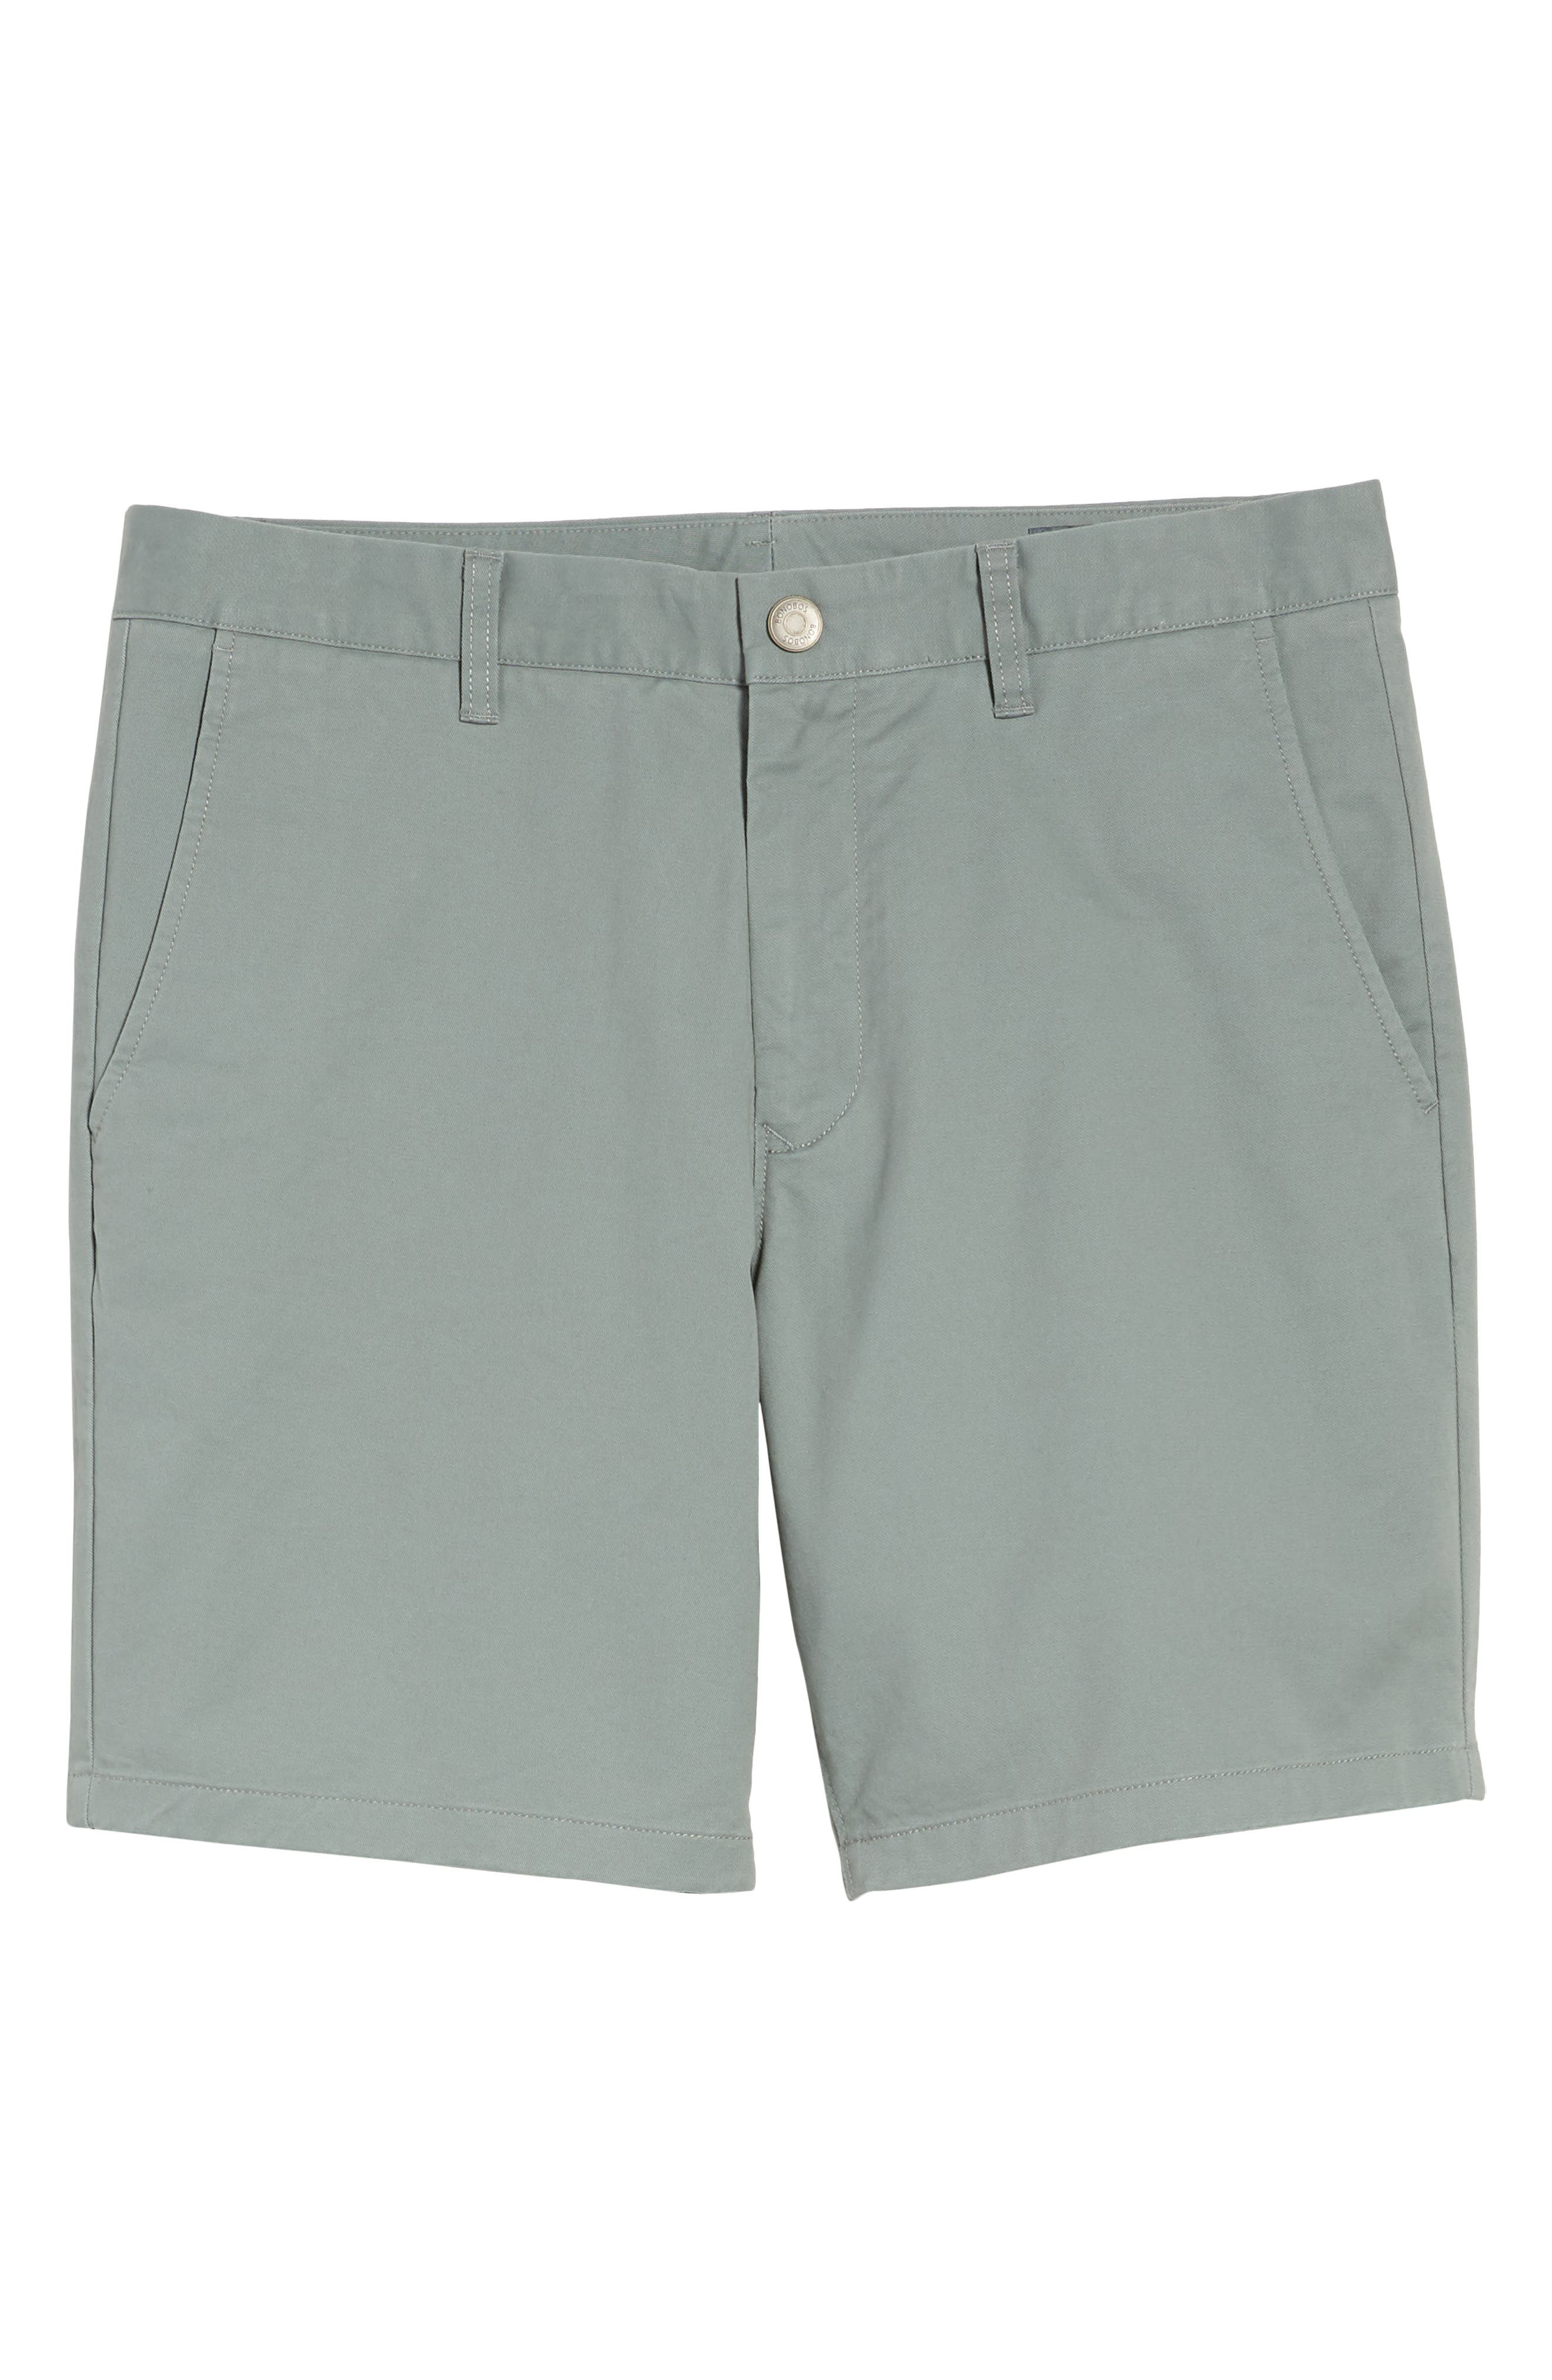 Stretch Washed Chino 7-Inch Shorts,                             Alternate thumbnail 125, color,